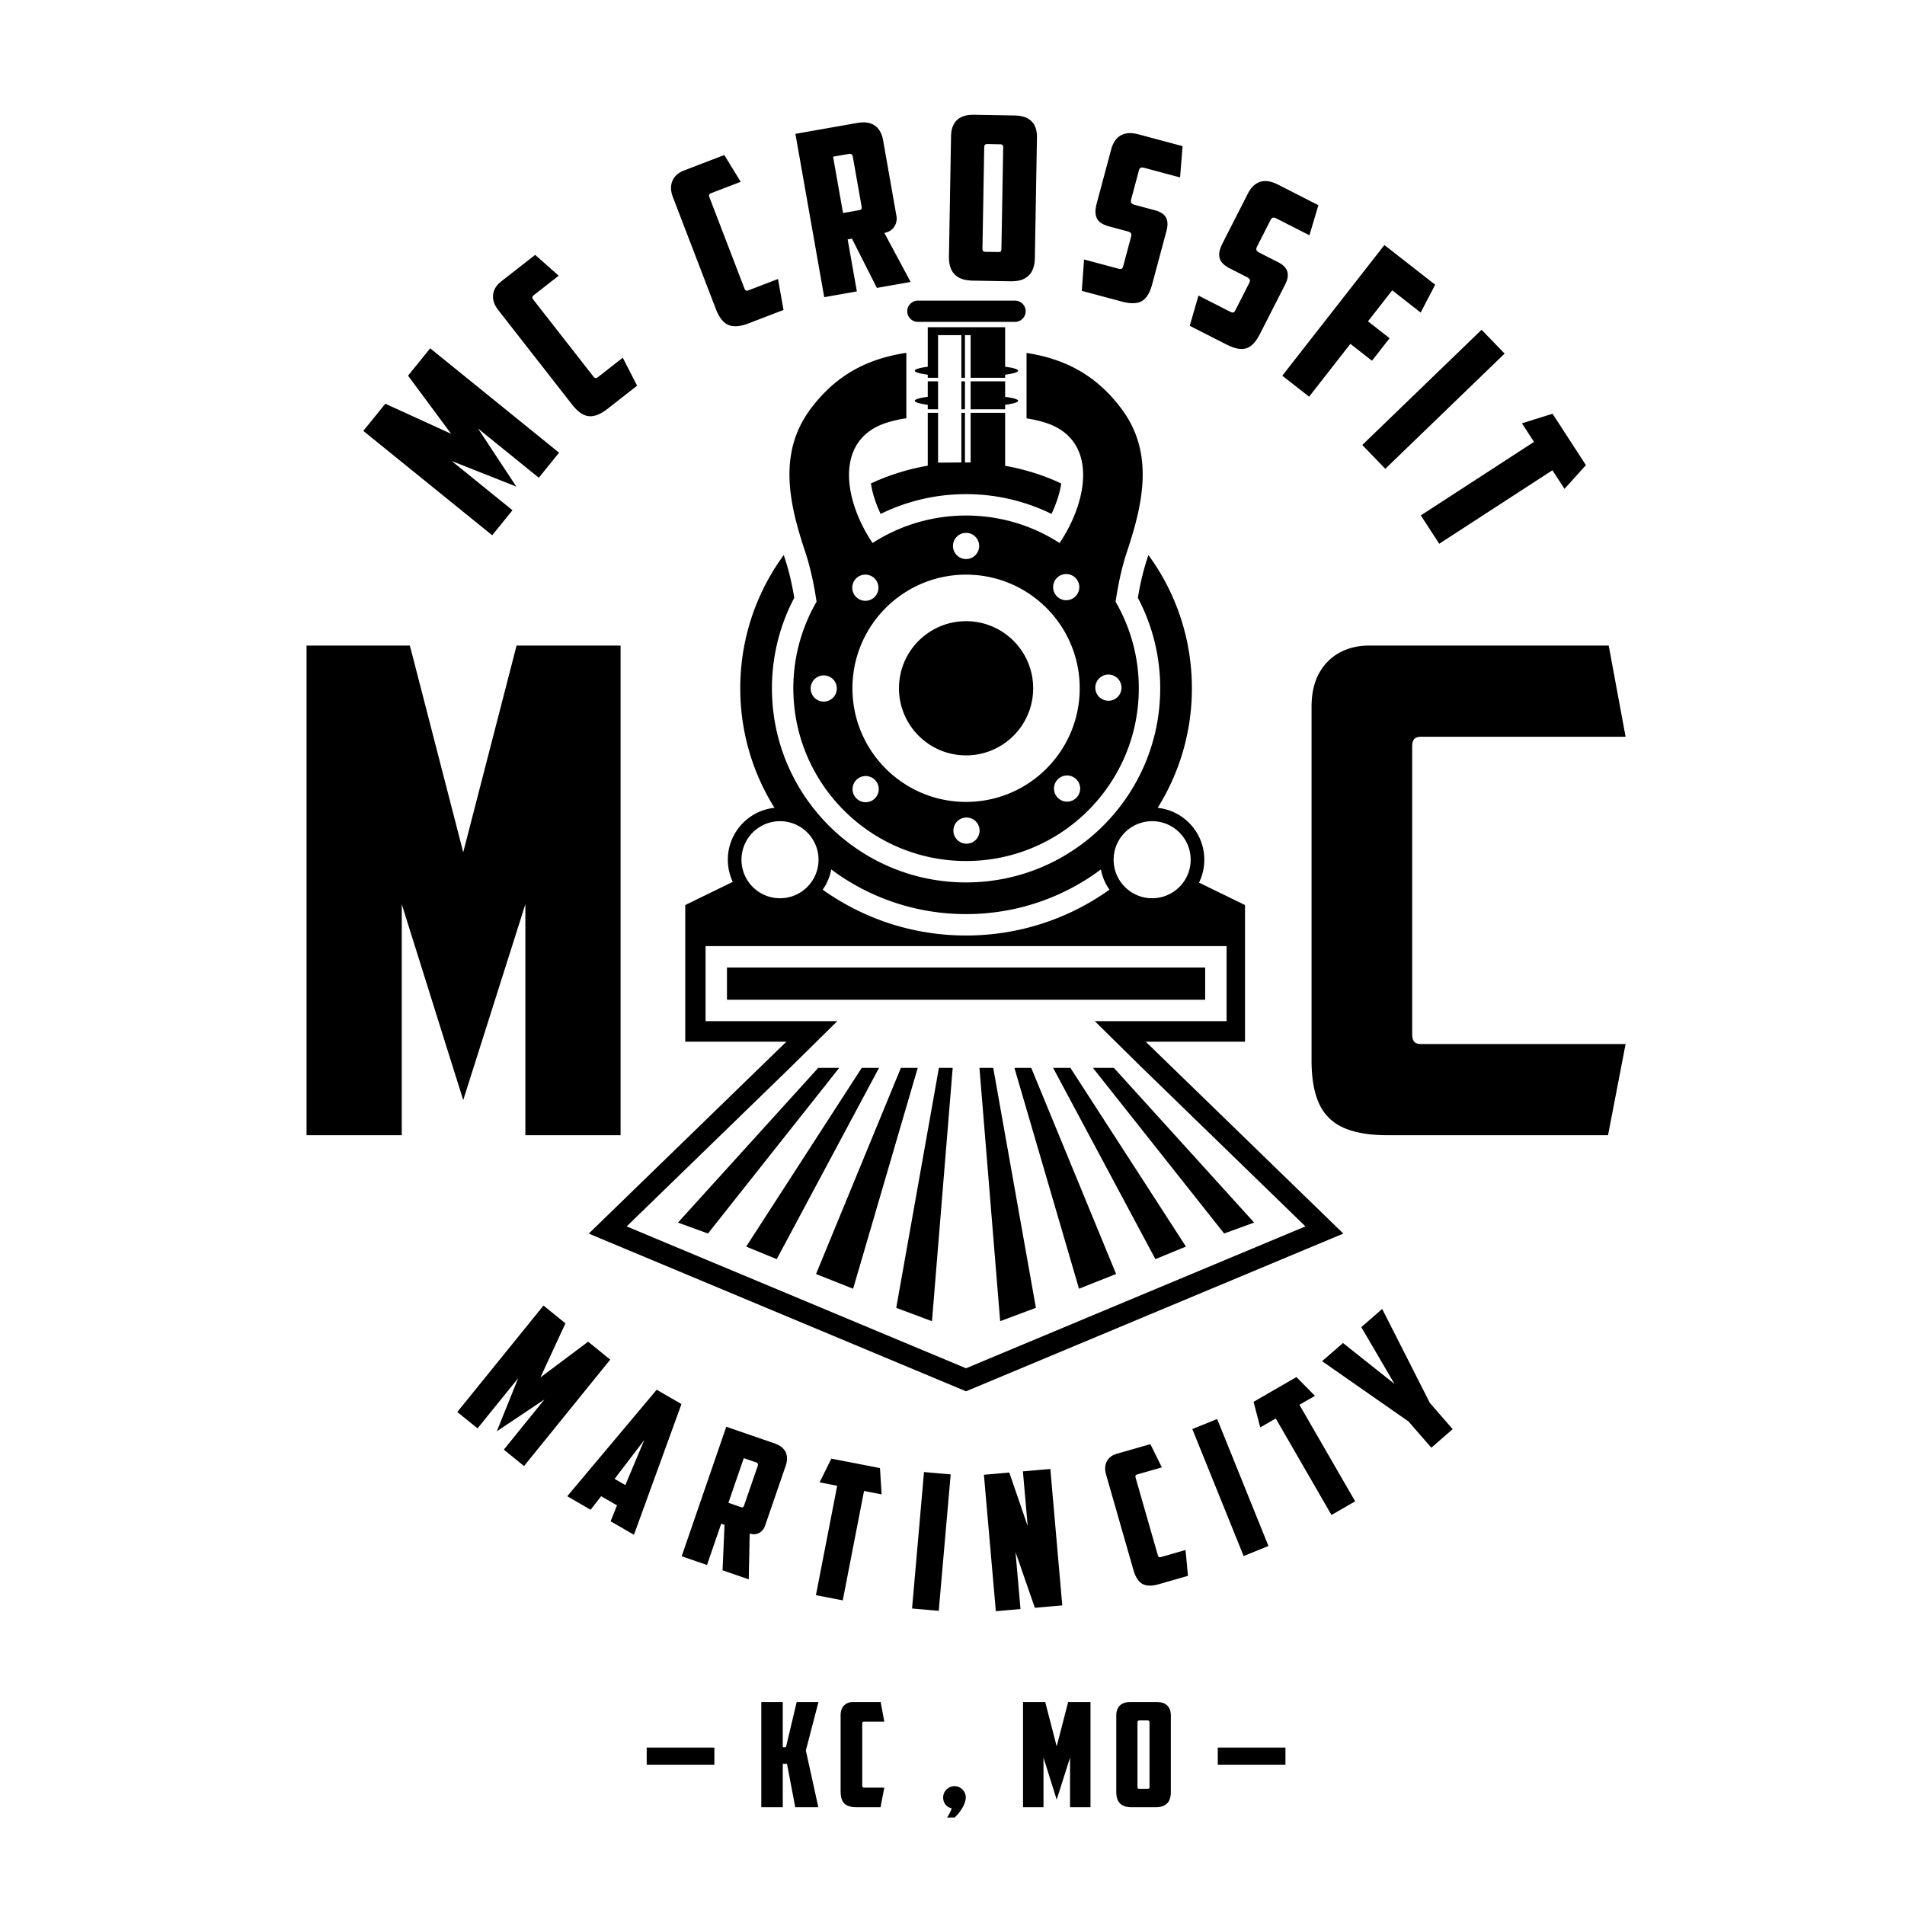 MC crossfit (transparent background)